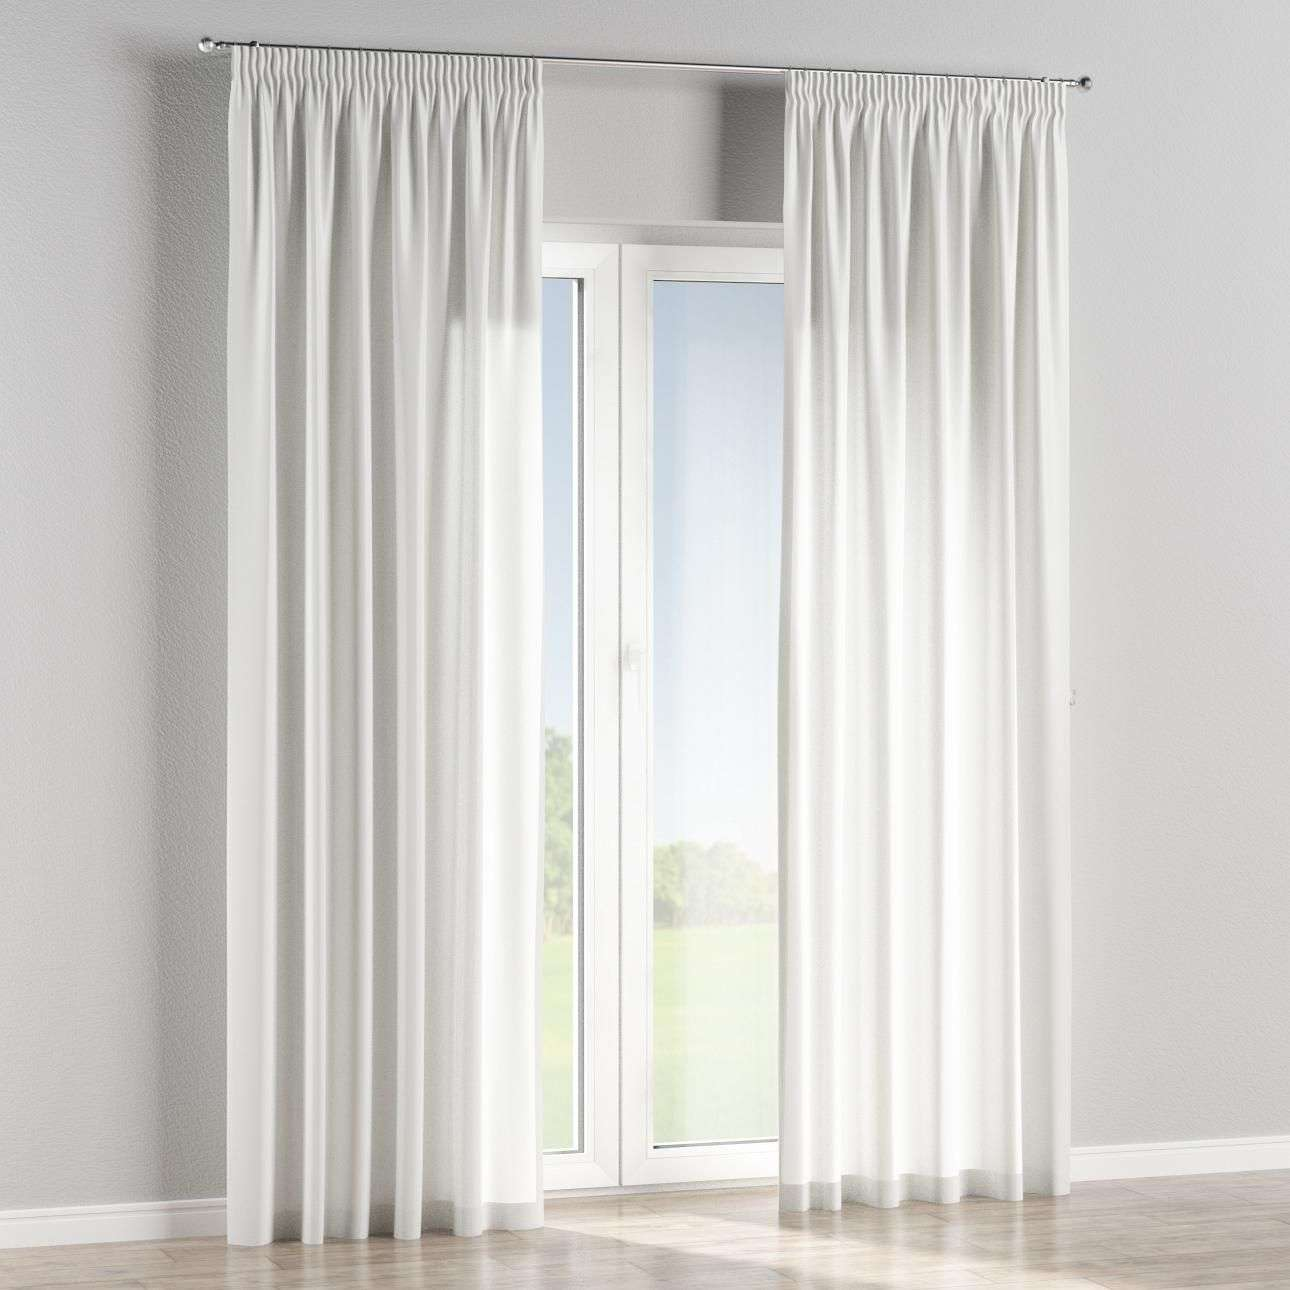 Pencil pleat curtains in collection SALE, fabric: 139-05